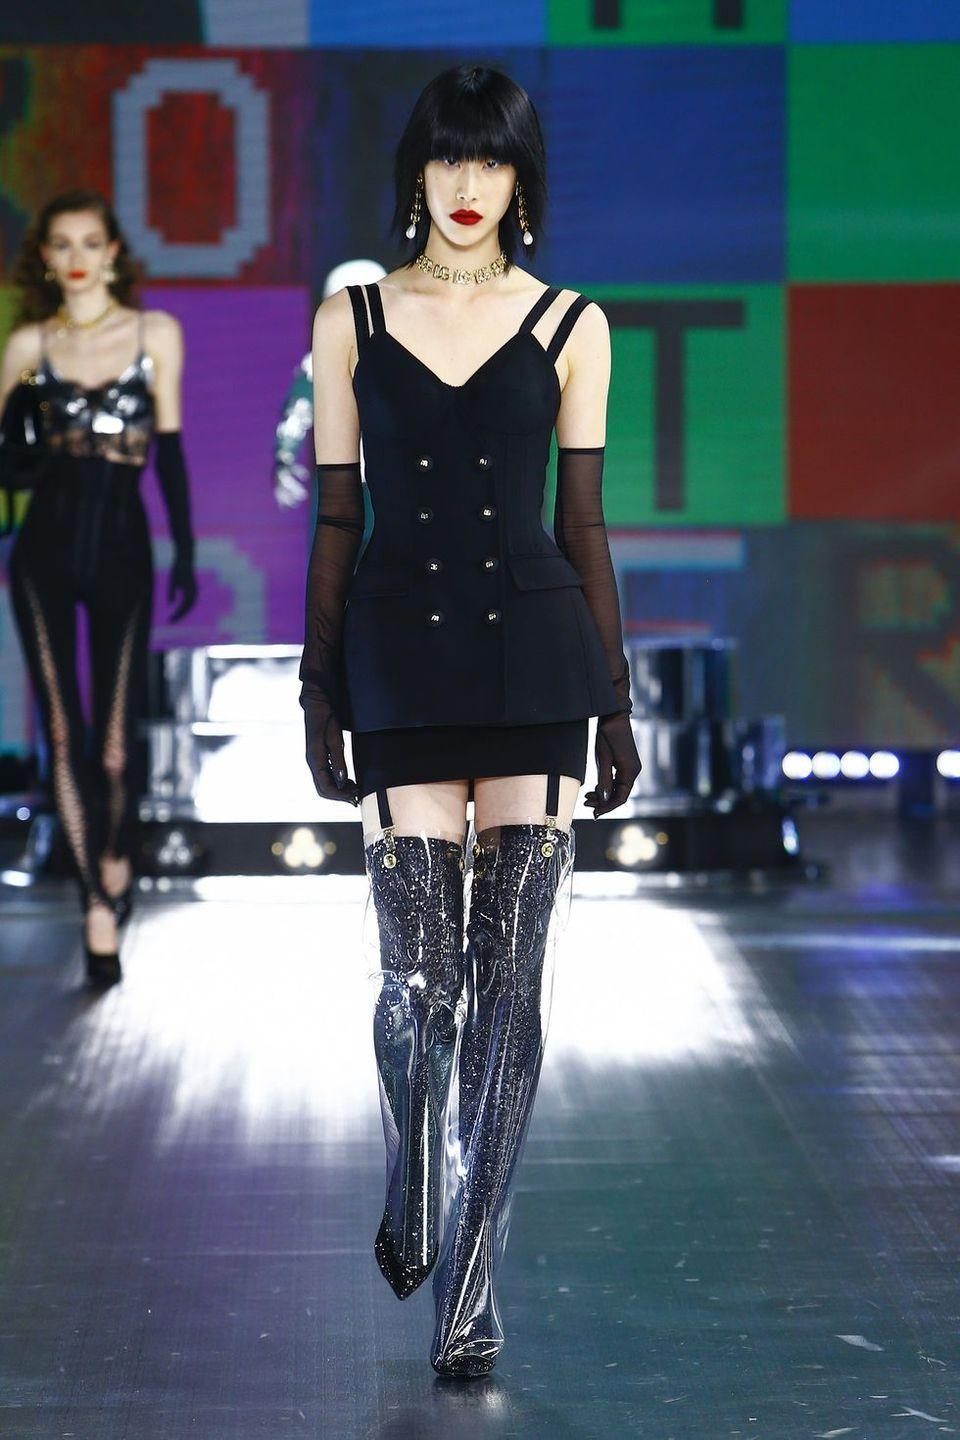 <p>Domenico Dolce and Stefano Gabbana said their Fall 2021 collection would offer a preview of the #DGNEXTCHAPTER. Today they delivered on that futuristic promise with a collection video in which models shared the stage with humanoid robots on loan from Istituto Italiano di Tecnologia, a Genoa research center doing cutting-edge work on human cognition and artificial intelligence. The inspiration may have been clinical, but the collection was pure '90s Dolce & Gabbana fun—think pearl minidresses, metallic moon boots, bejeweled crowns, neon leopard bodysuits and puffer jackets. These are clothes for a post-pandemic disco where we're definitely ready to party but still might want to be wearing PPE. Fortunately, there's a Dolce face shield for that. —<em>Alison S. Cohn</em></p>